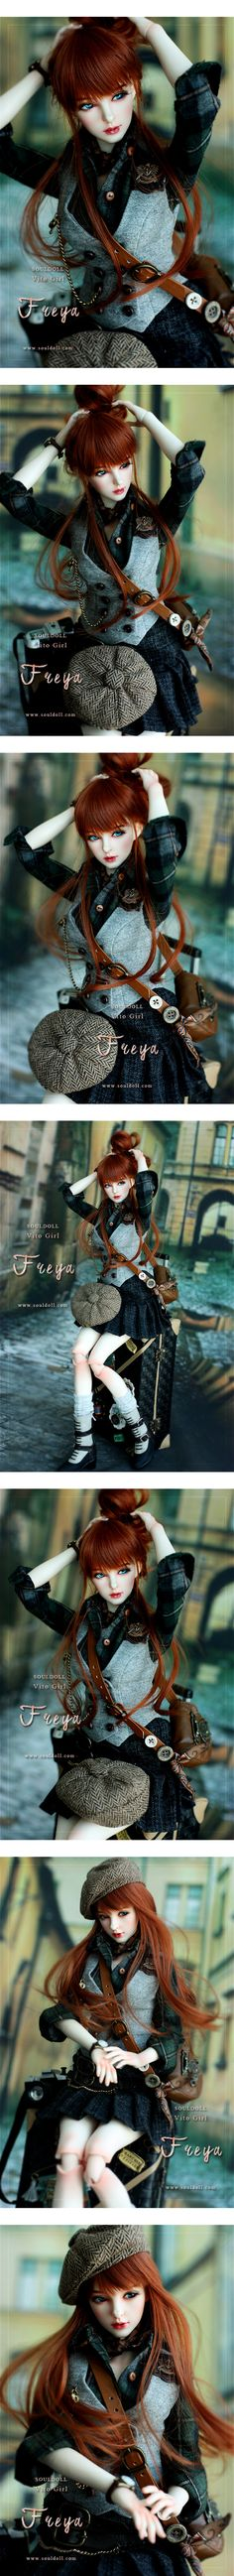 Souldoll Vito girl Freya                                                                                                                                                      More